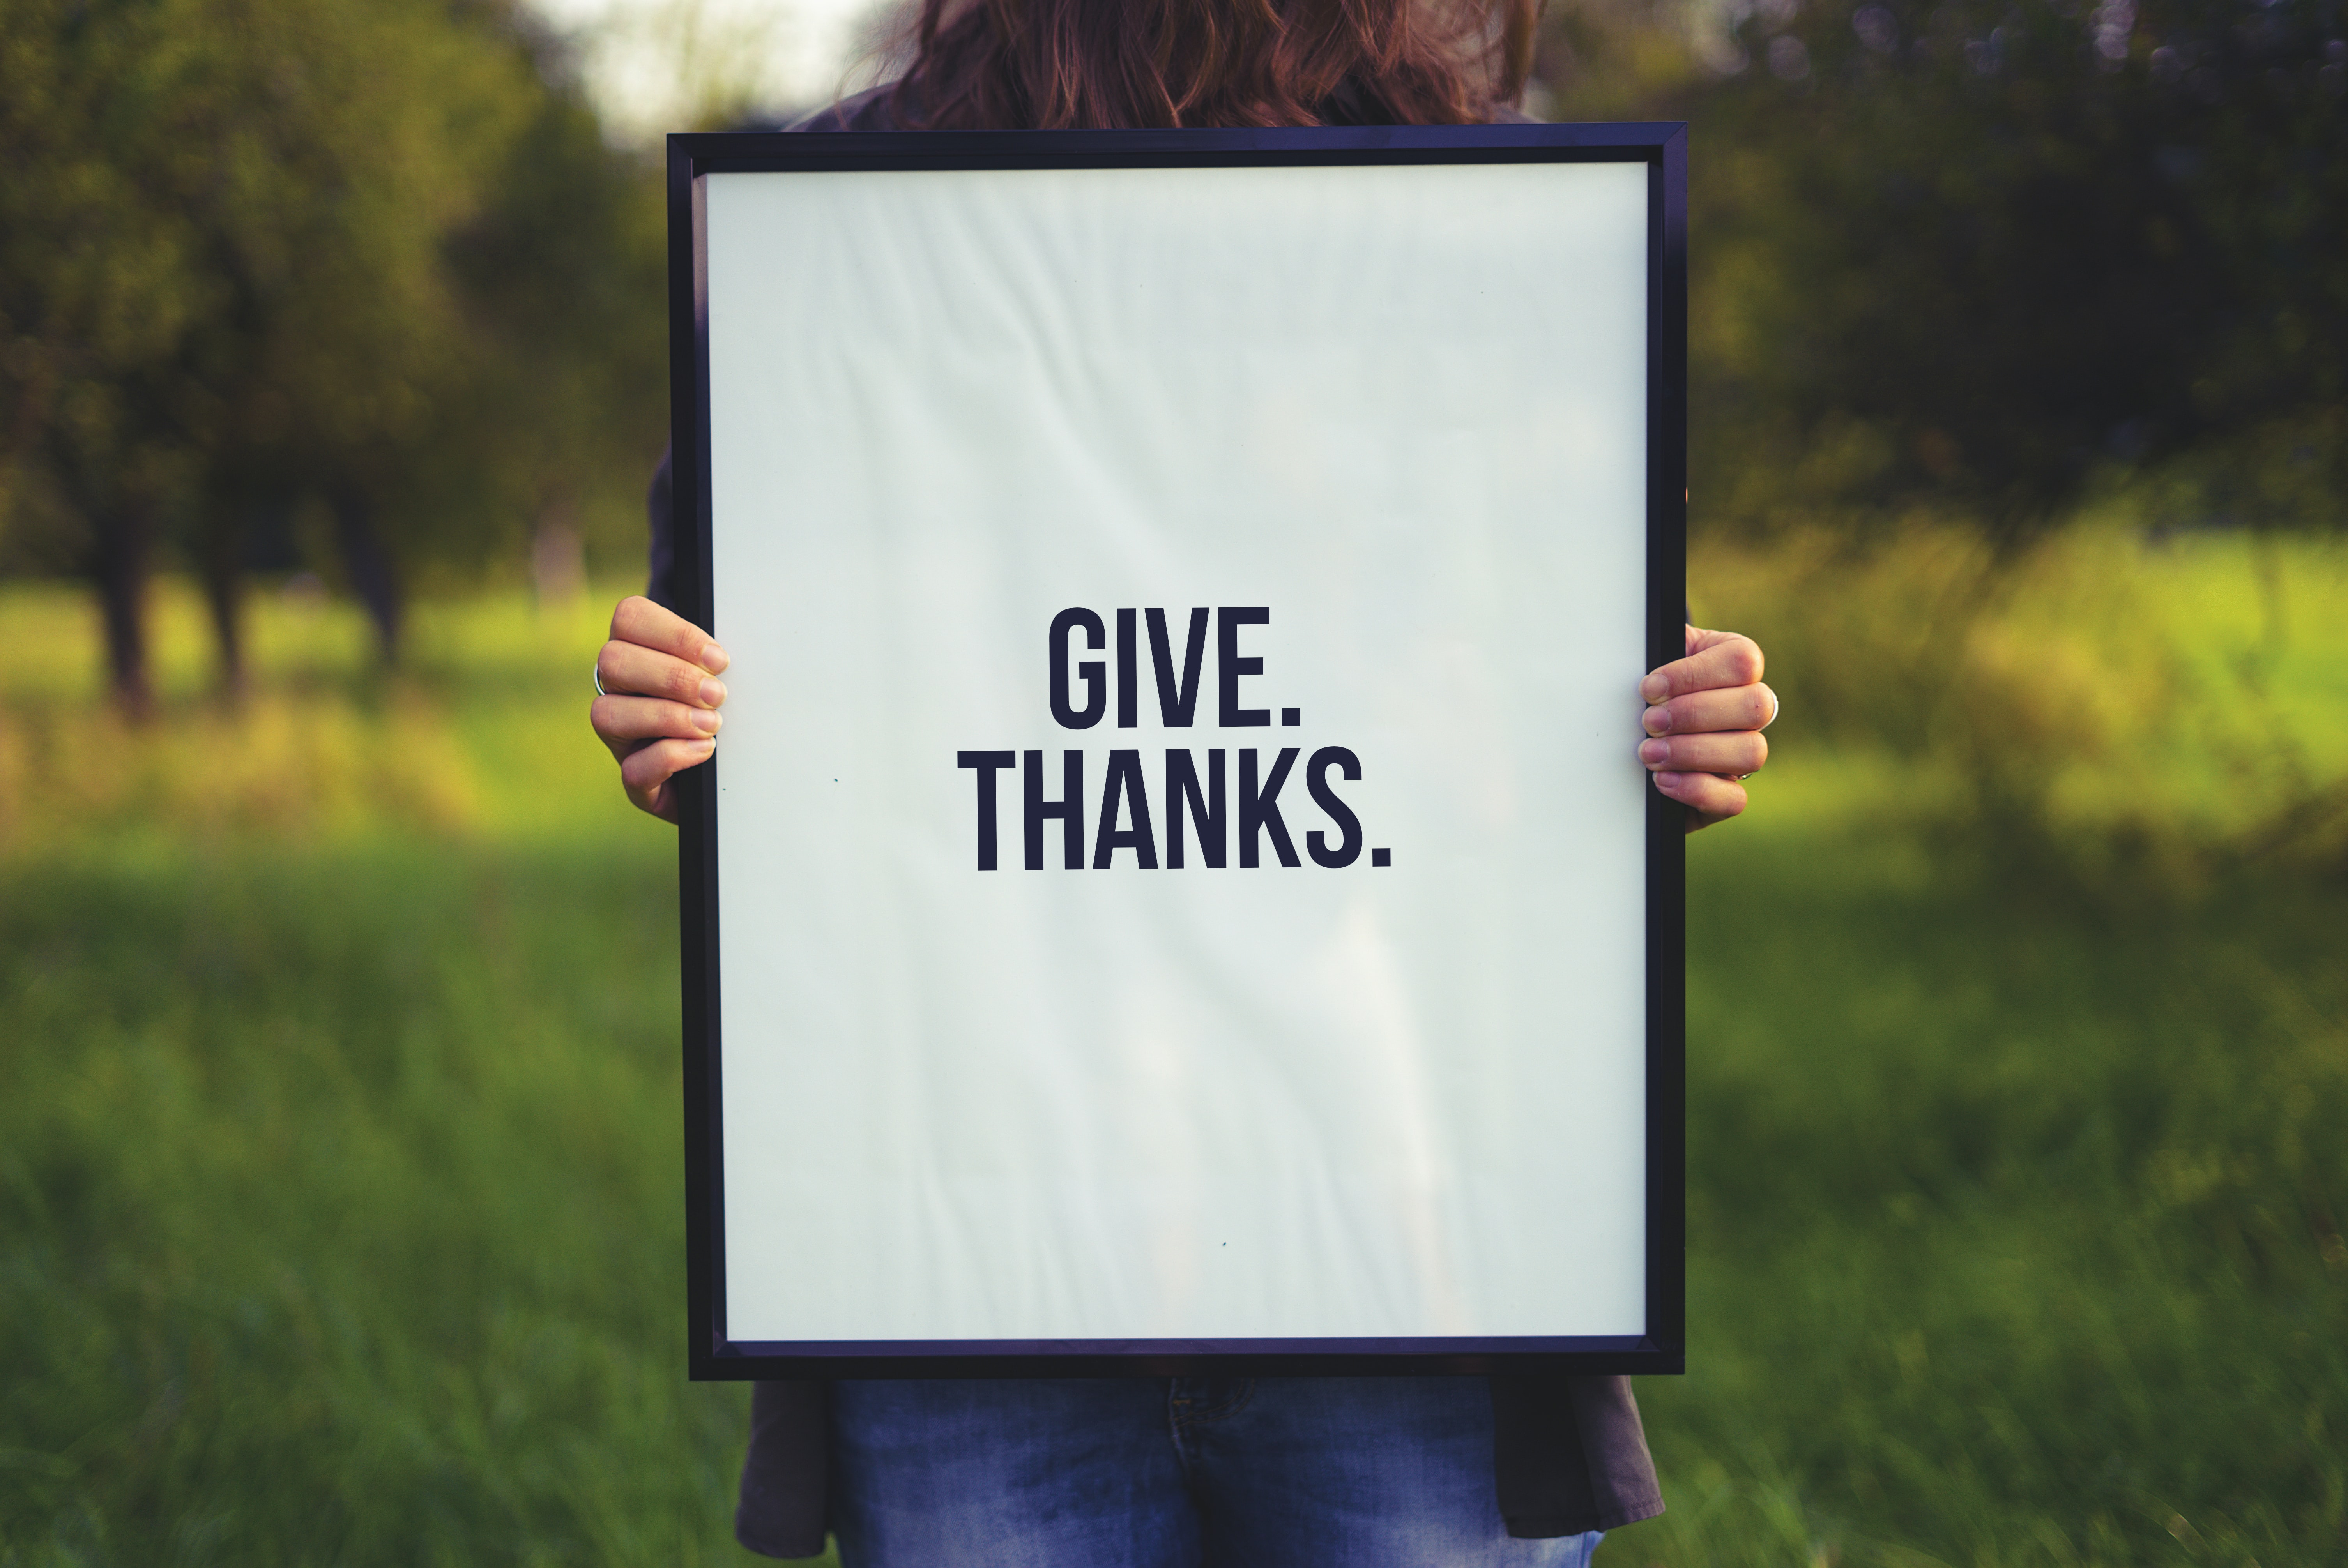 """A woman holding a sign that says """"give. thanks."""" on it in Werdorf"""